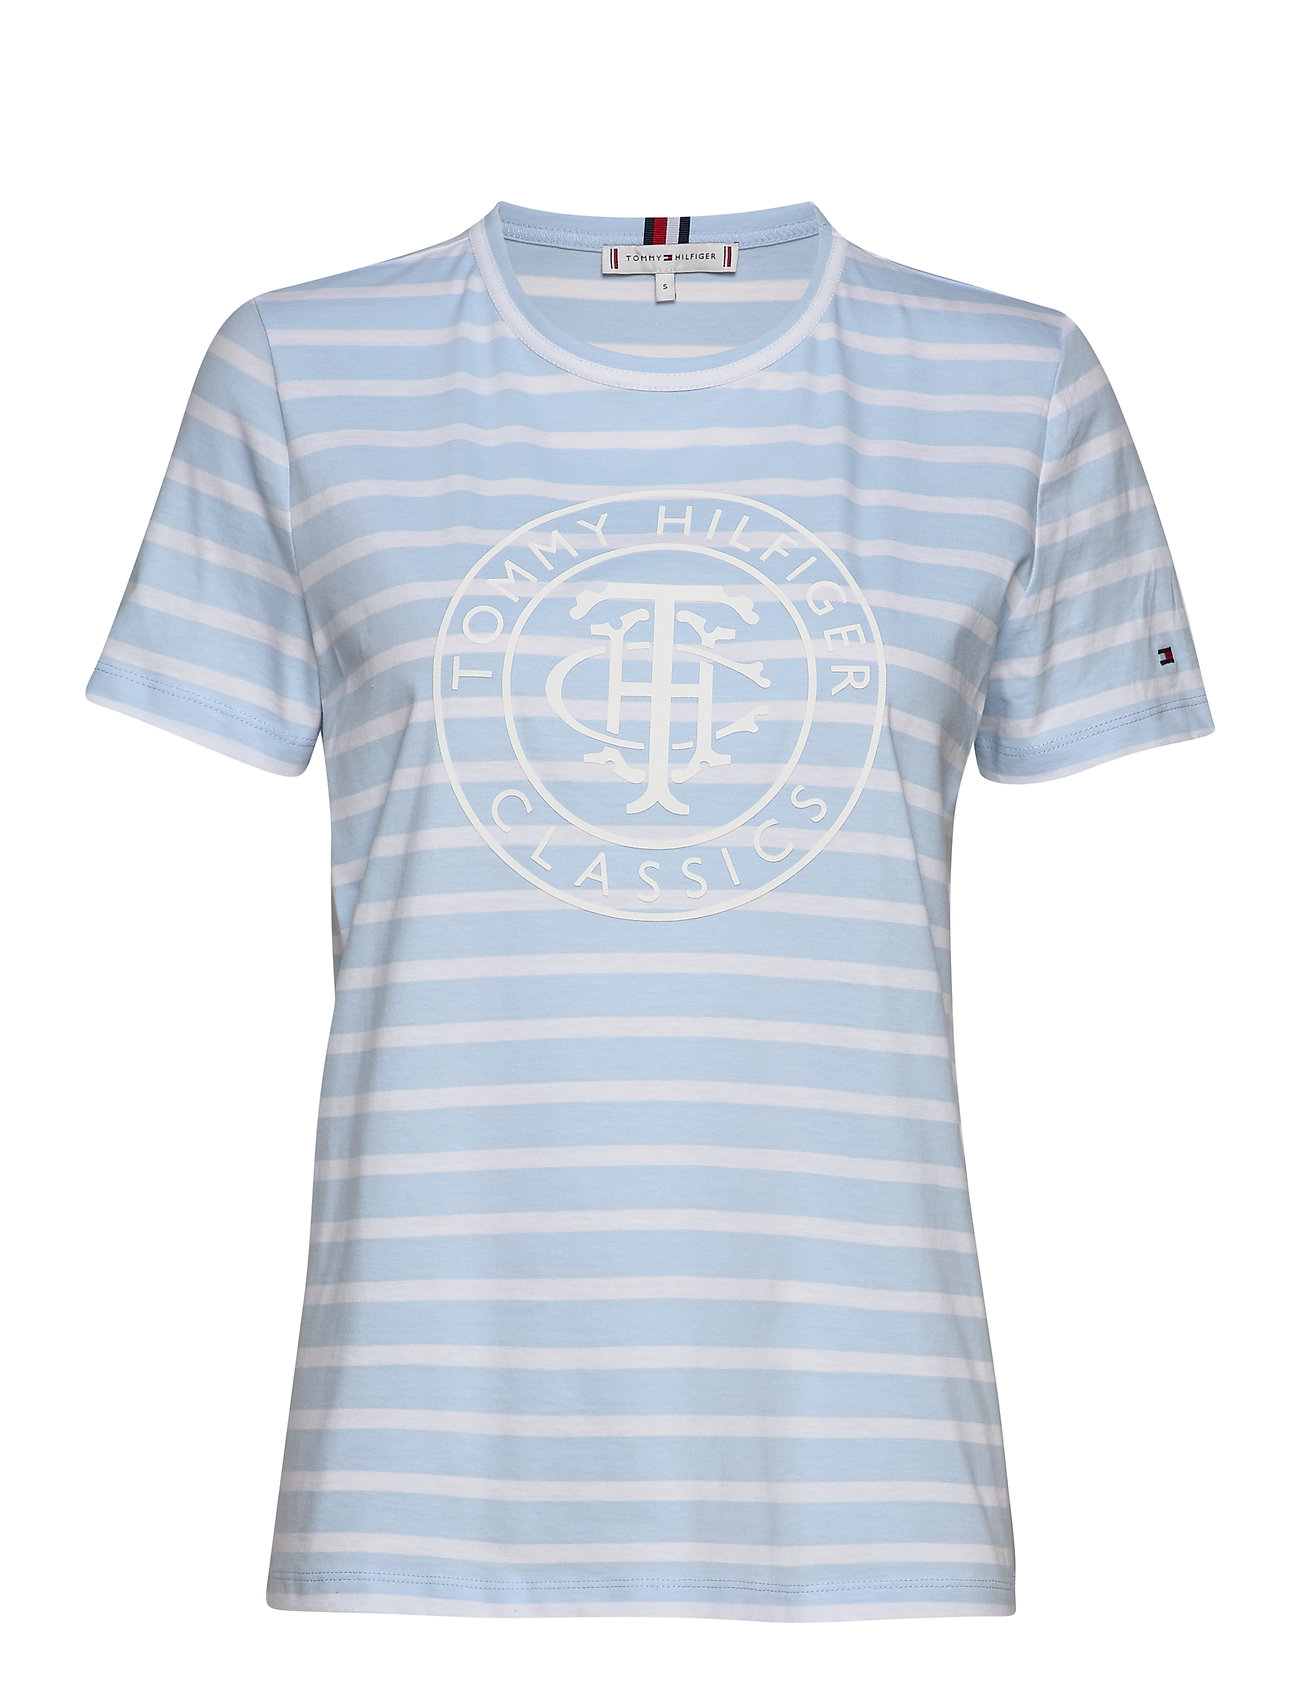 Tommy Hilfiger TH COOL ESS RELAXED GRAPHIC TEE - BRETON STP / BREEZY BLUE WHITE